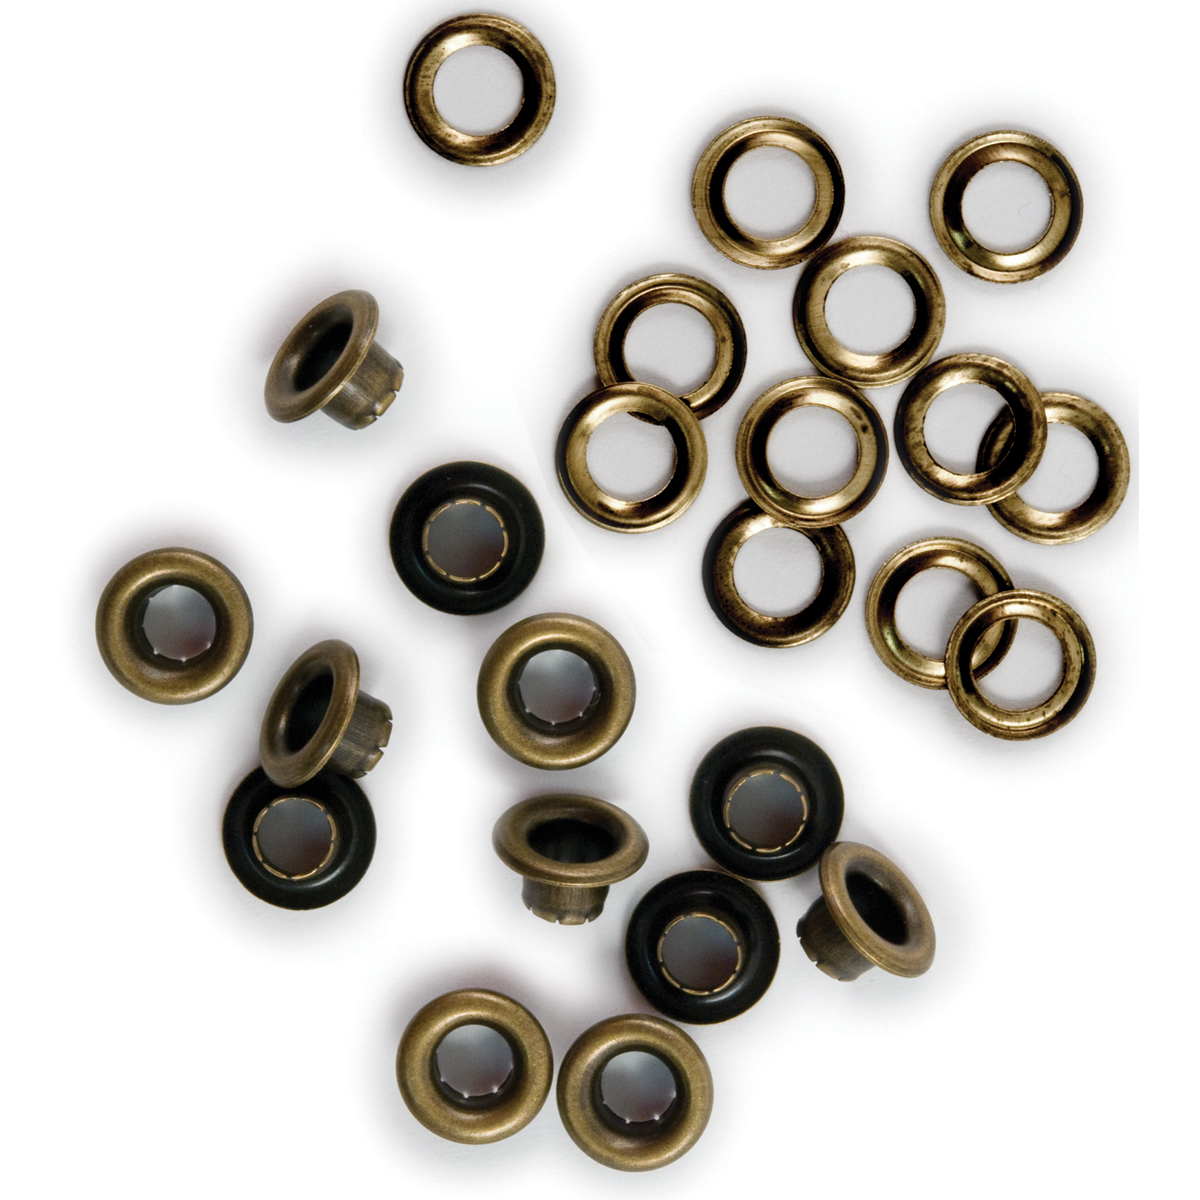 We R Memory Keepers Eyelets & Washers